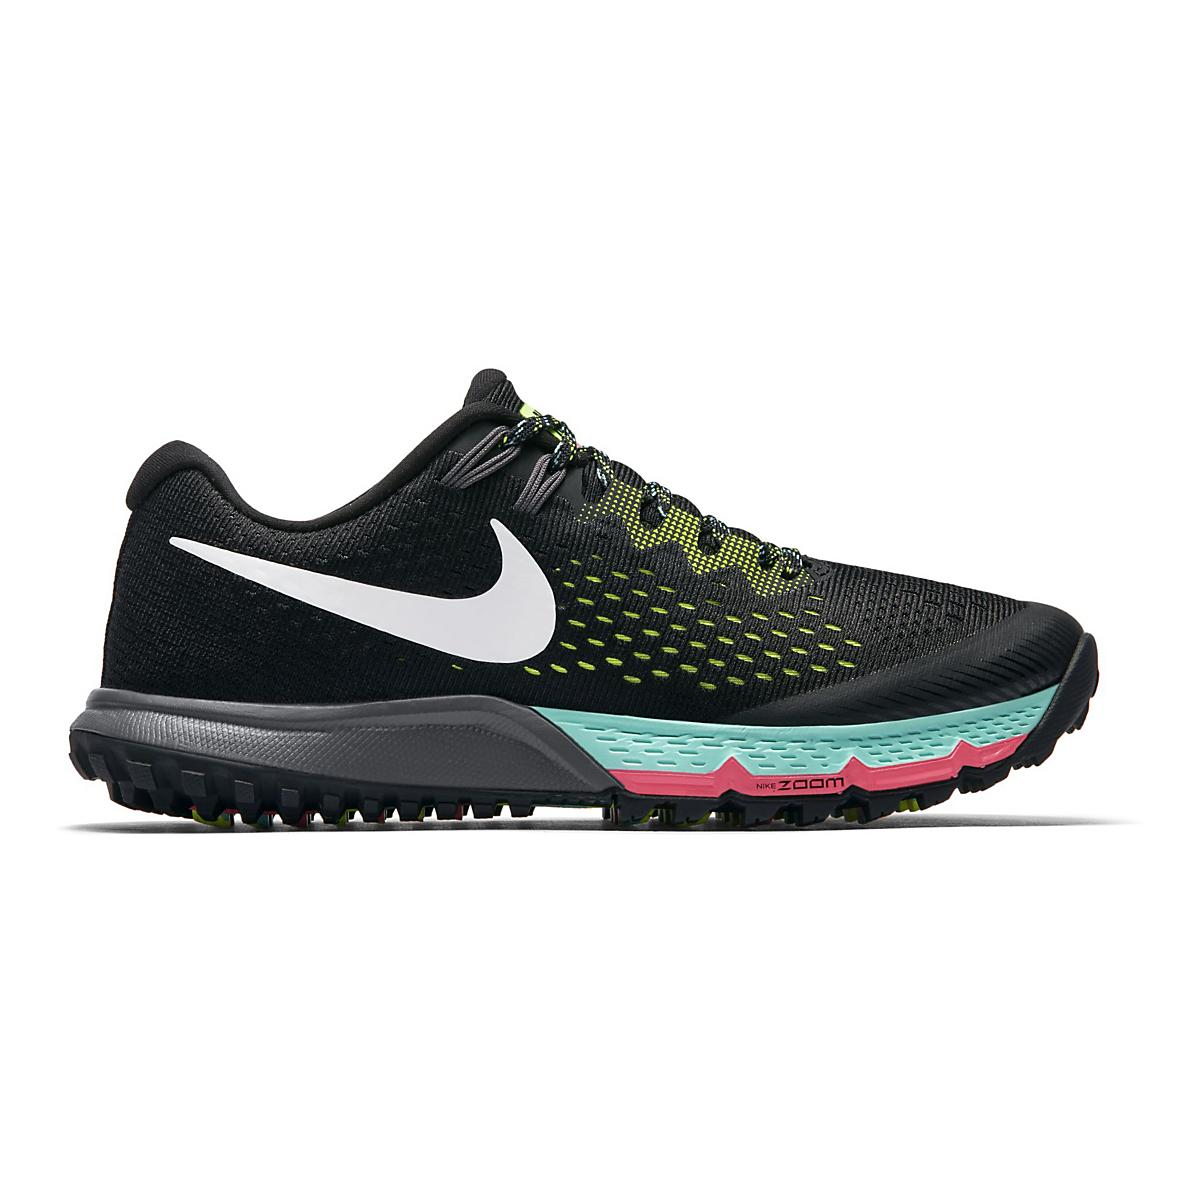 6a36e4f44115 Nike Air Zoom Terra Kiger 4 Trail Women s Running Shoes